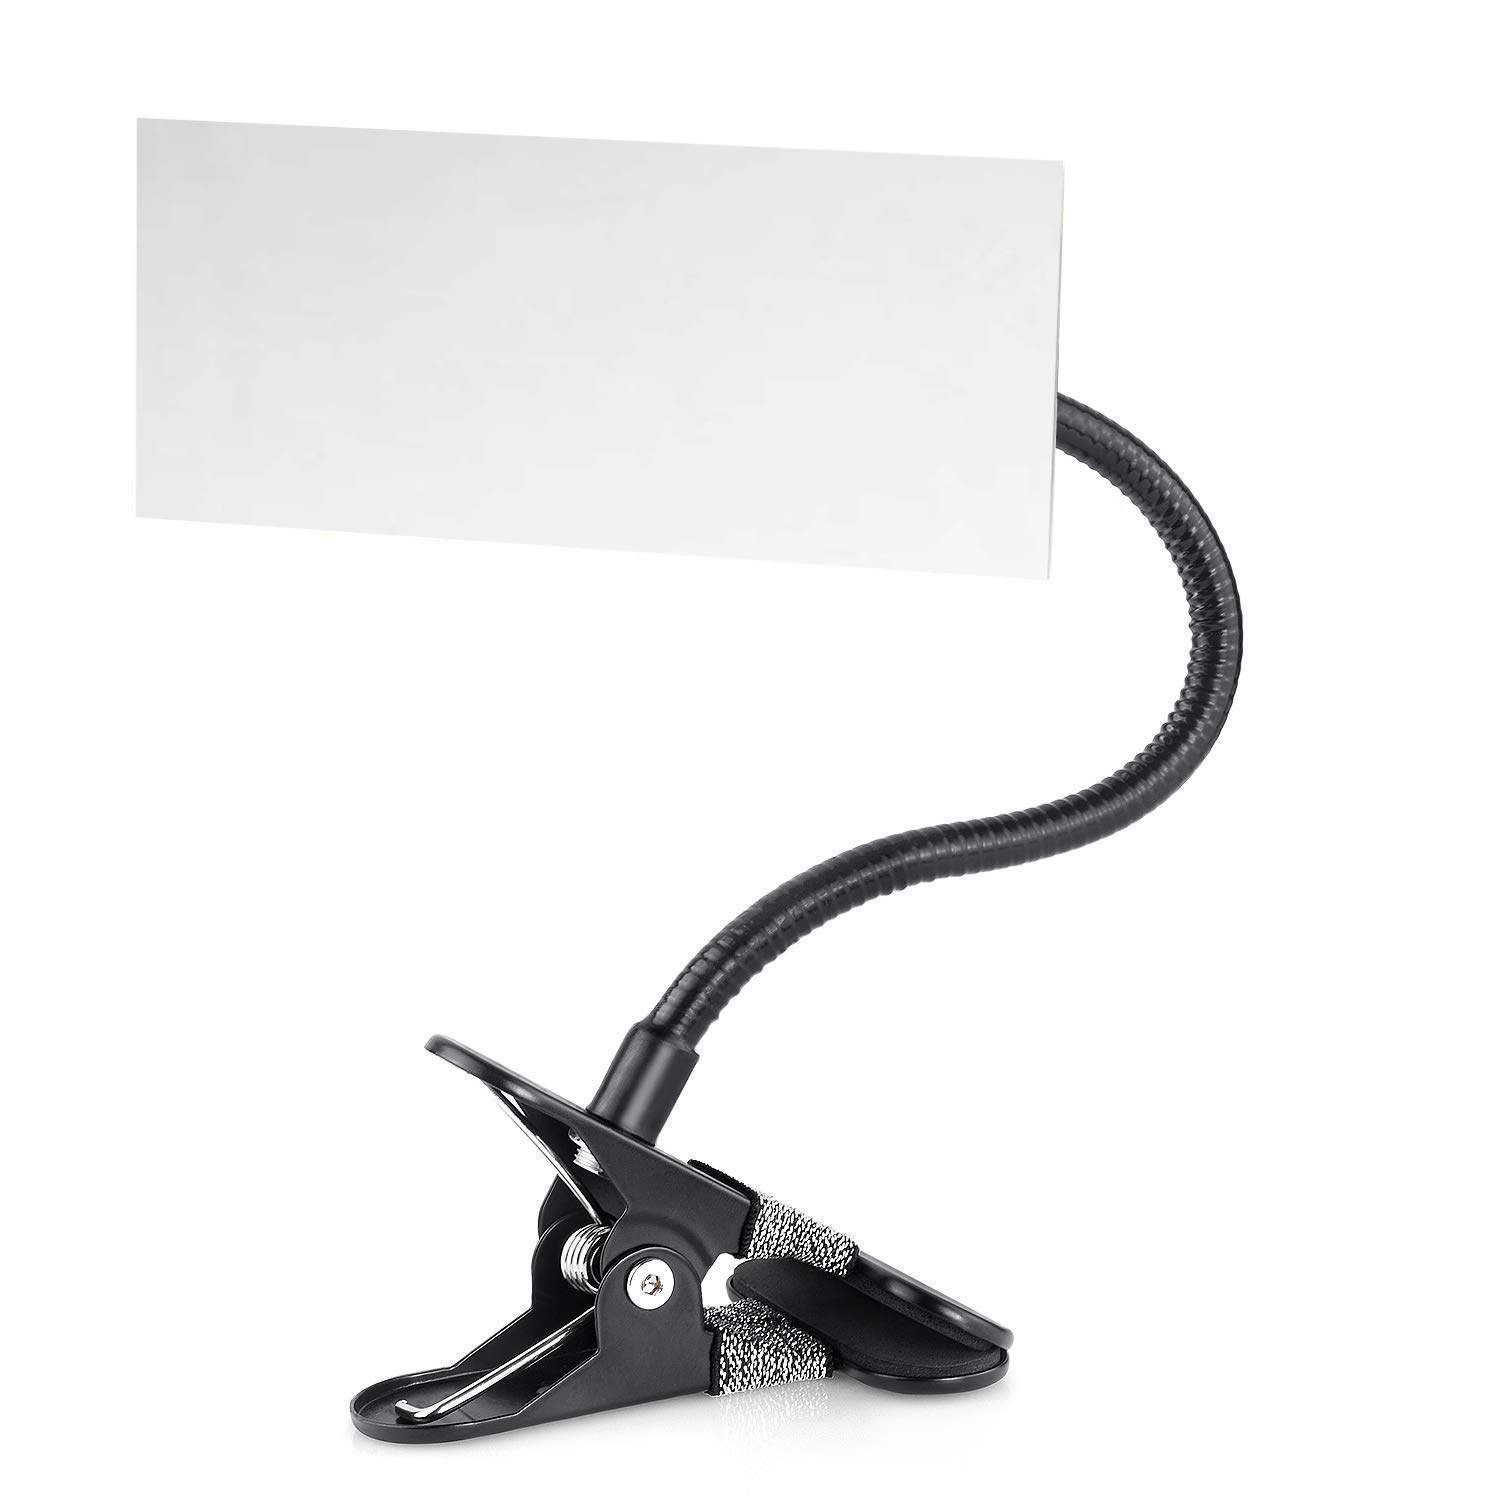 Computer Mirror, HengSheng Mirror for Personal Safety and Desk Security Rear View Monitors or Anywhere (6.7'' x 2.95'')